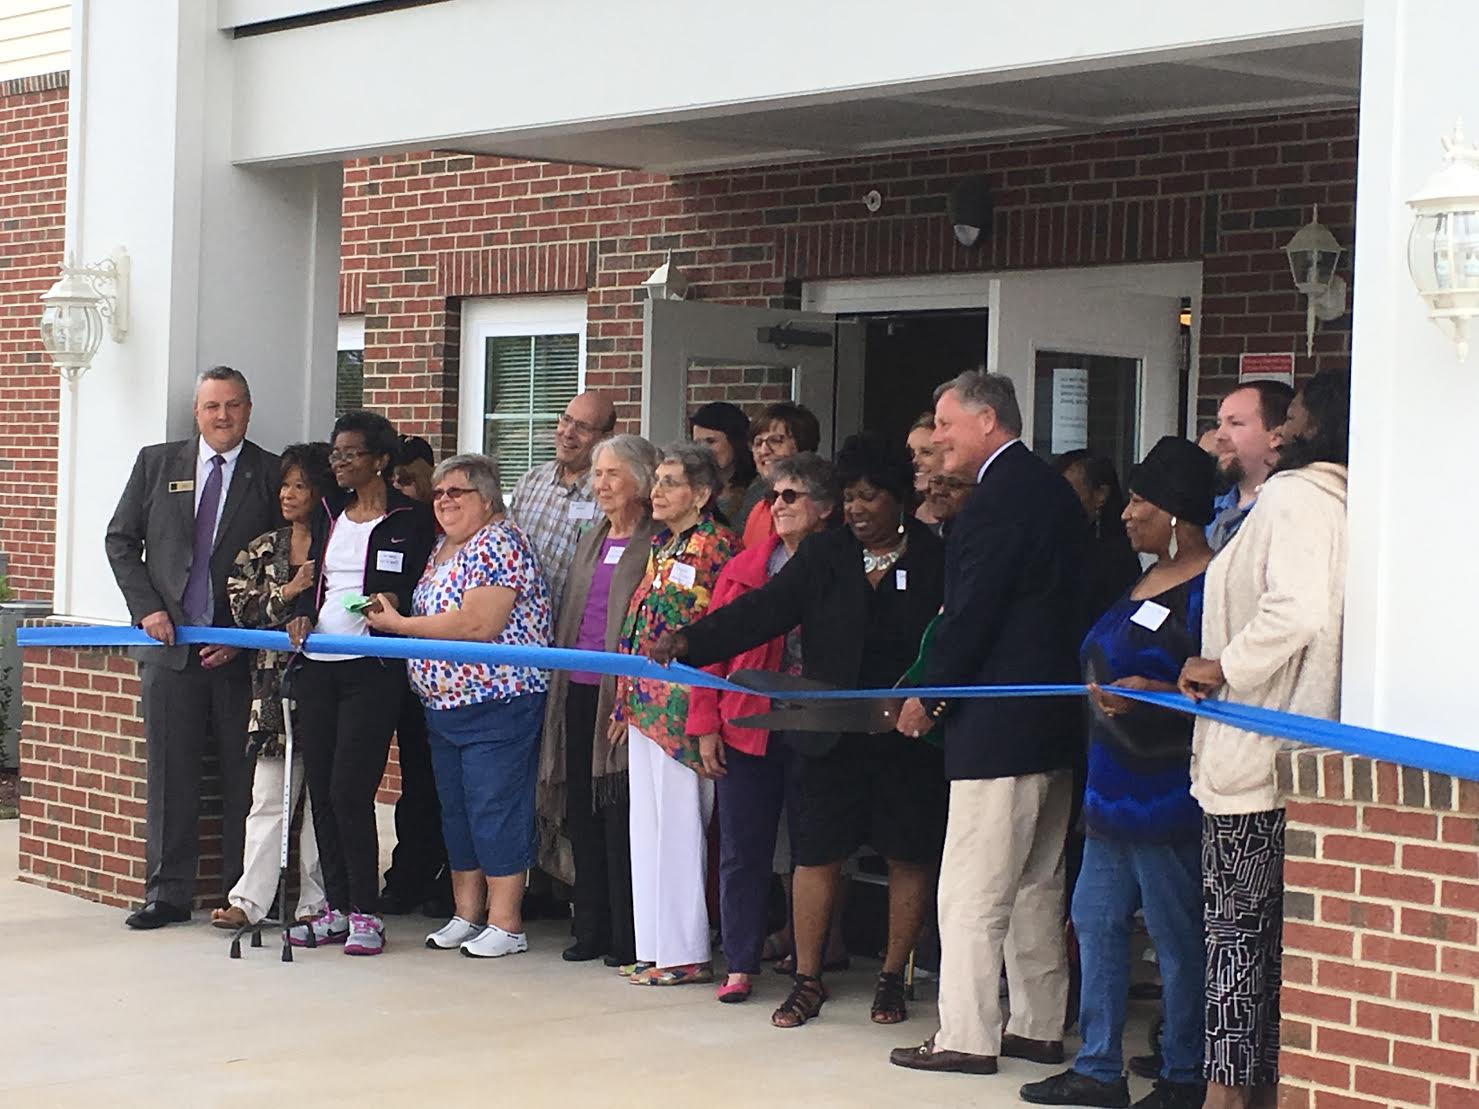 Wakefield Spring Ribbon Cutting Ceremony